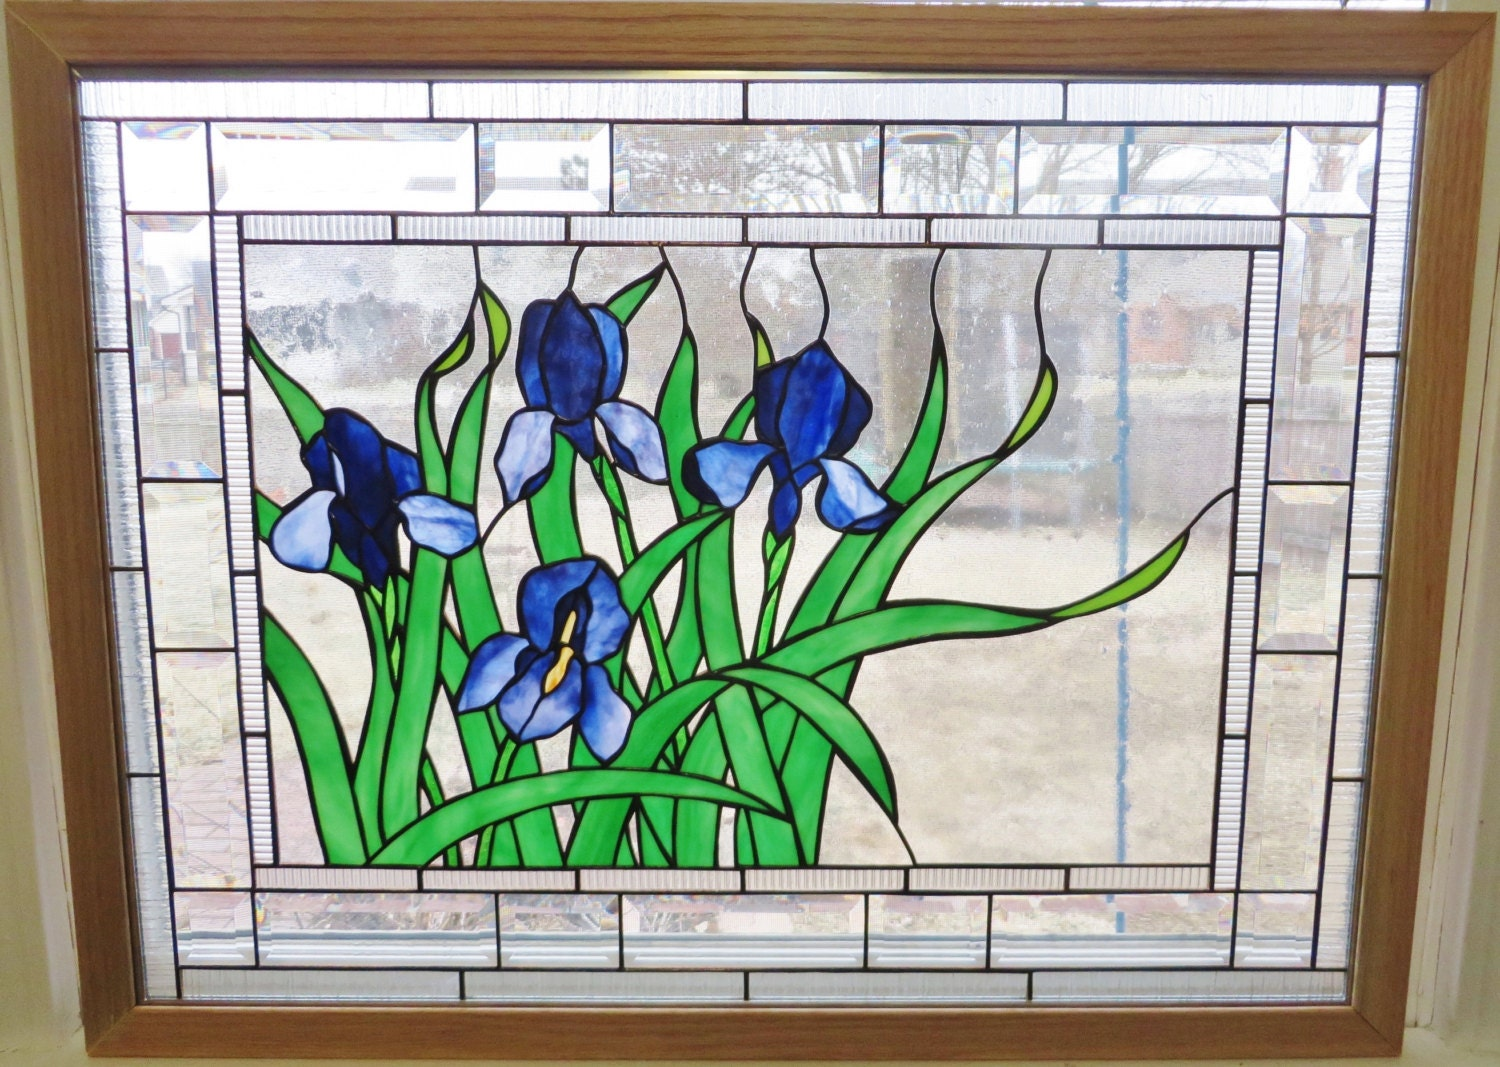 Stained glass window panel glass art purple blue iris flowers for Window design art